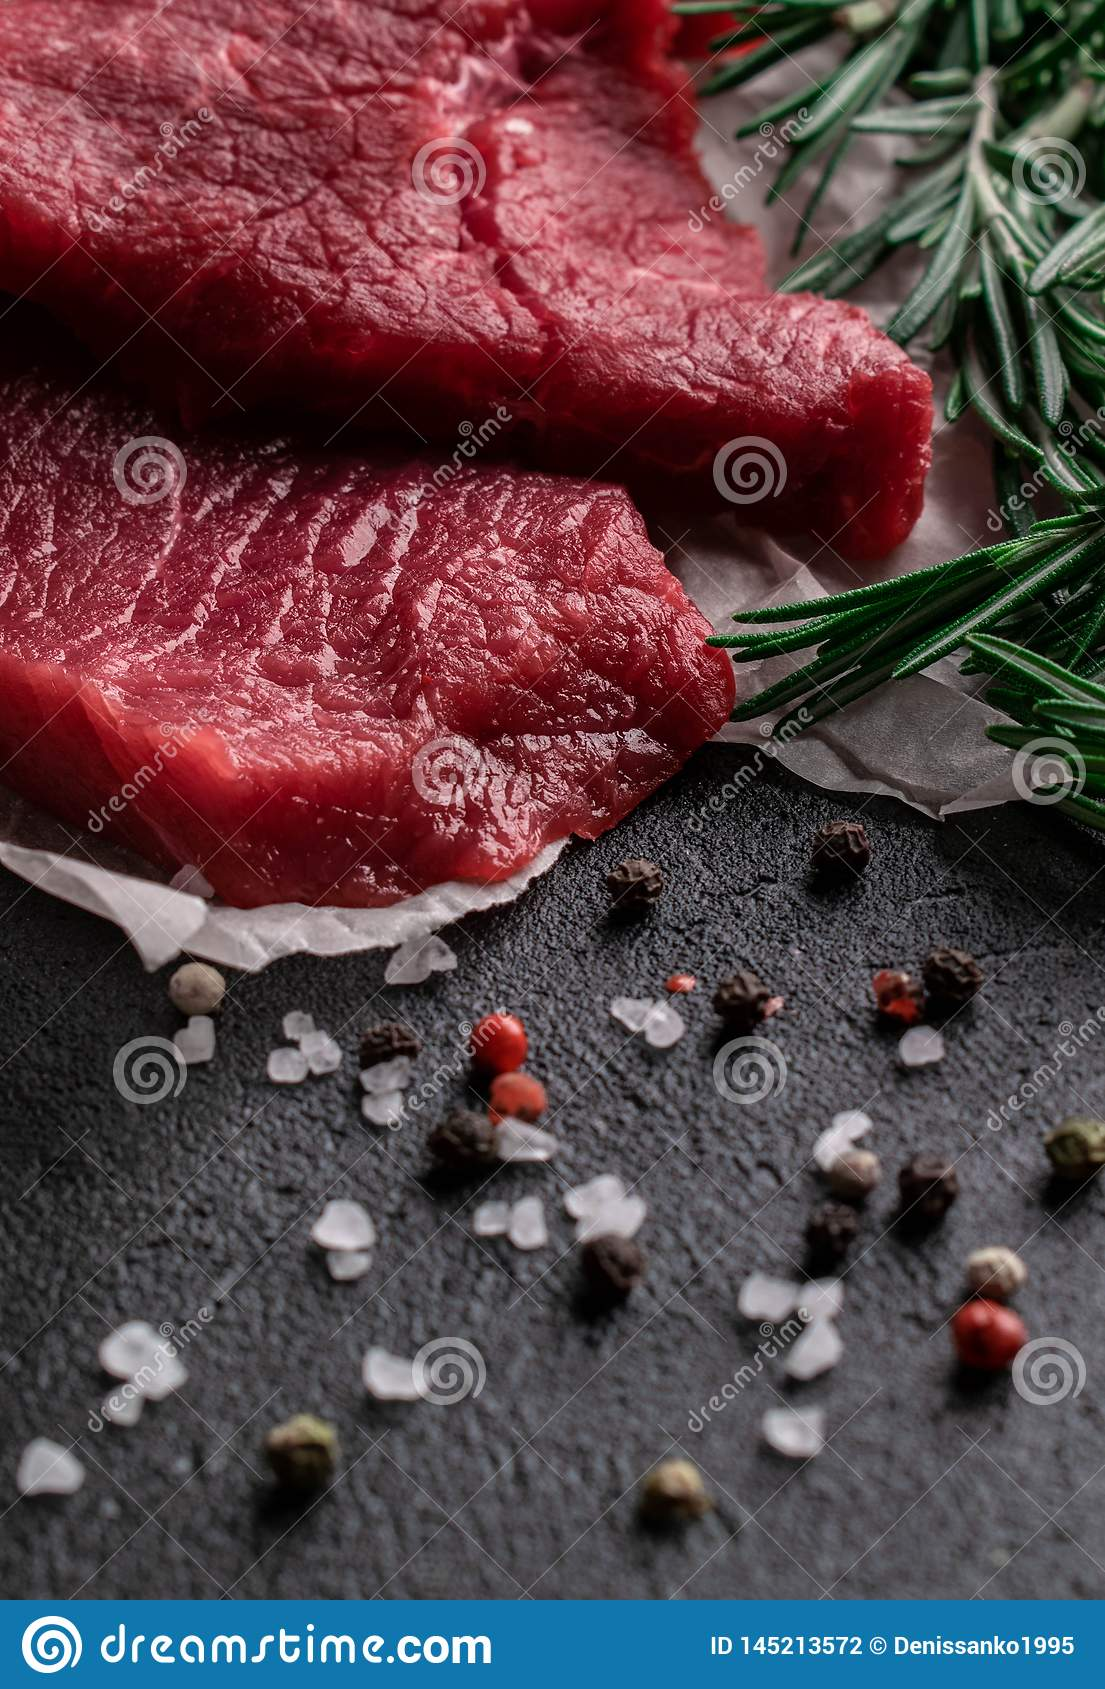 Raw beef steak with rosemary branches on parchment paper with pepper and salt